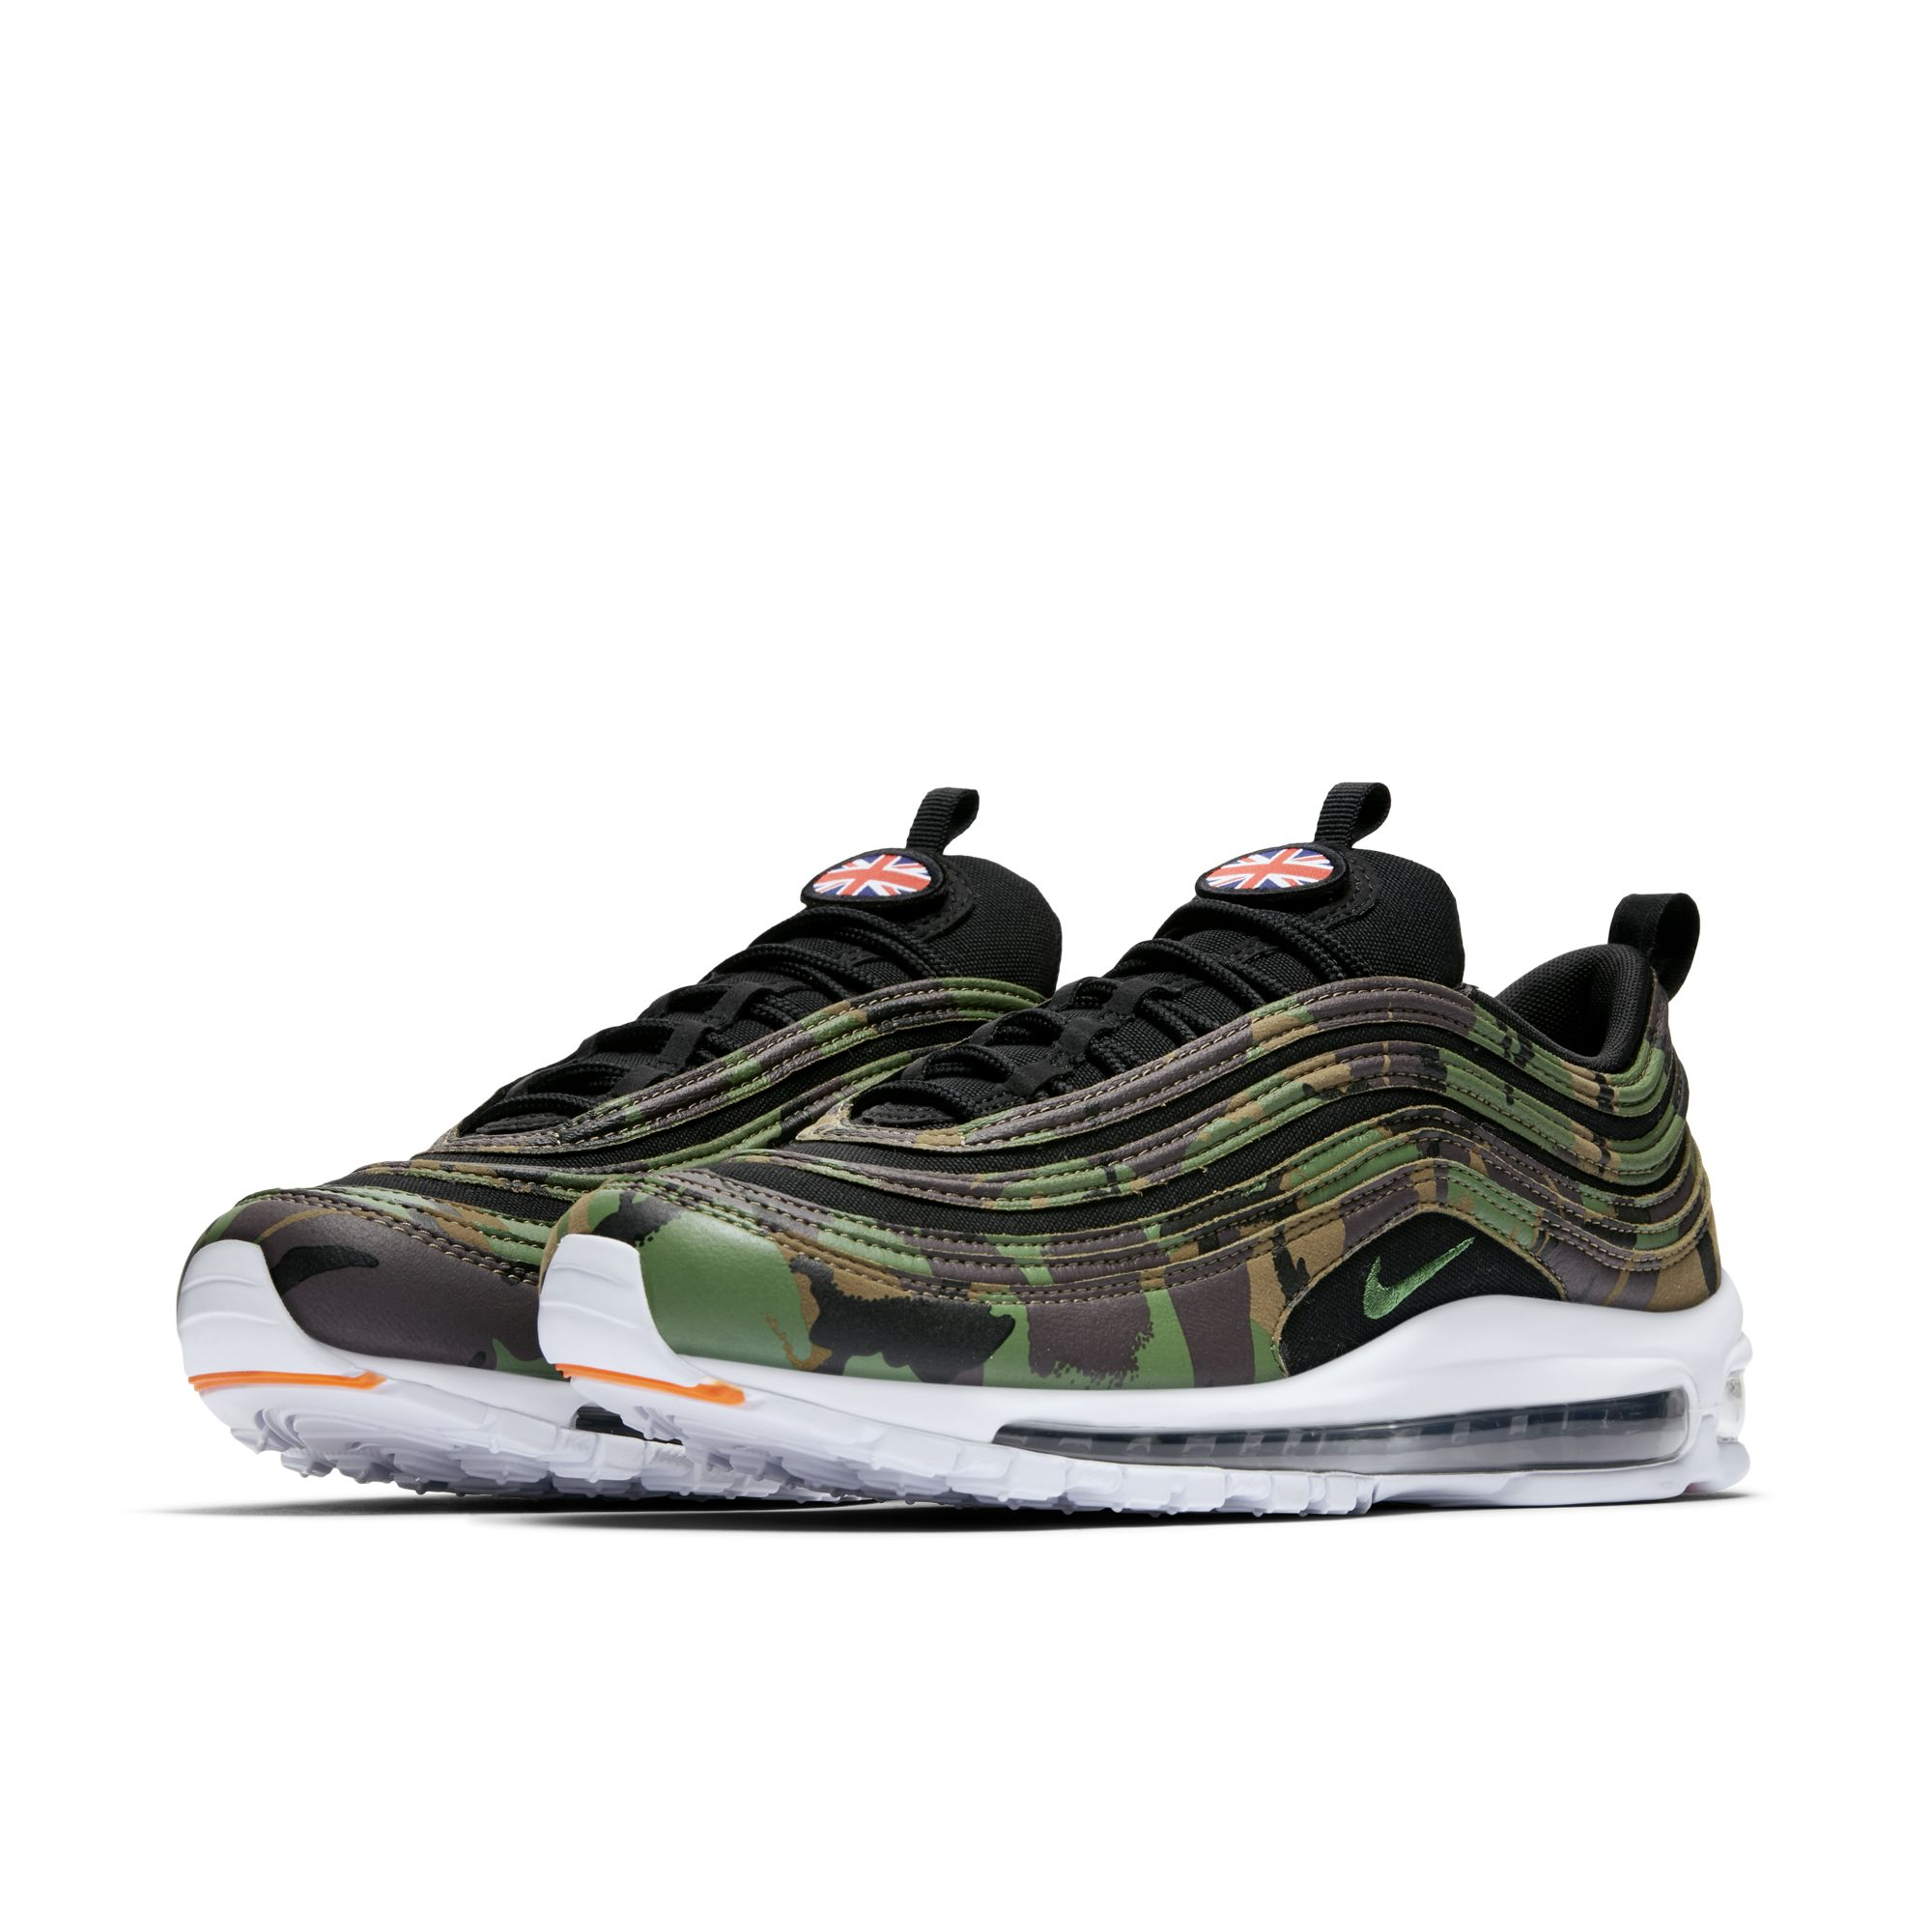 The Nike Air Max 97 Premium Camo Pack is for France, Germany